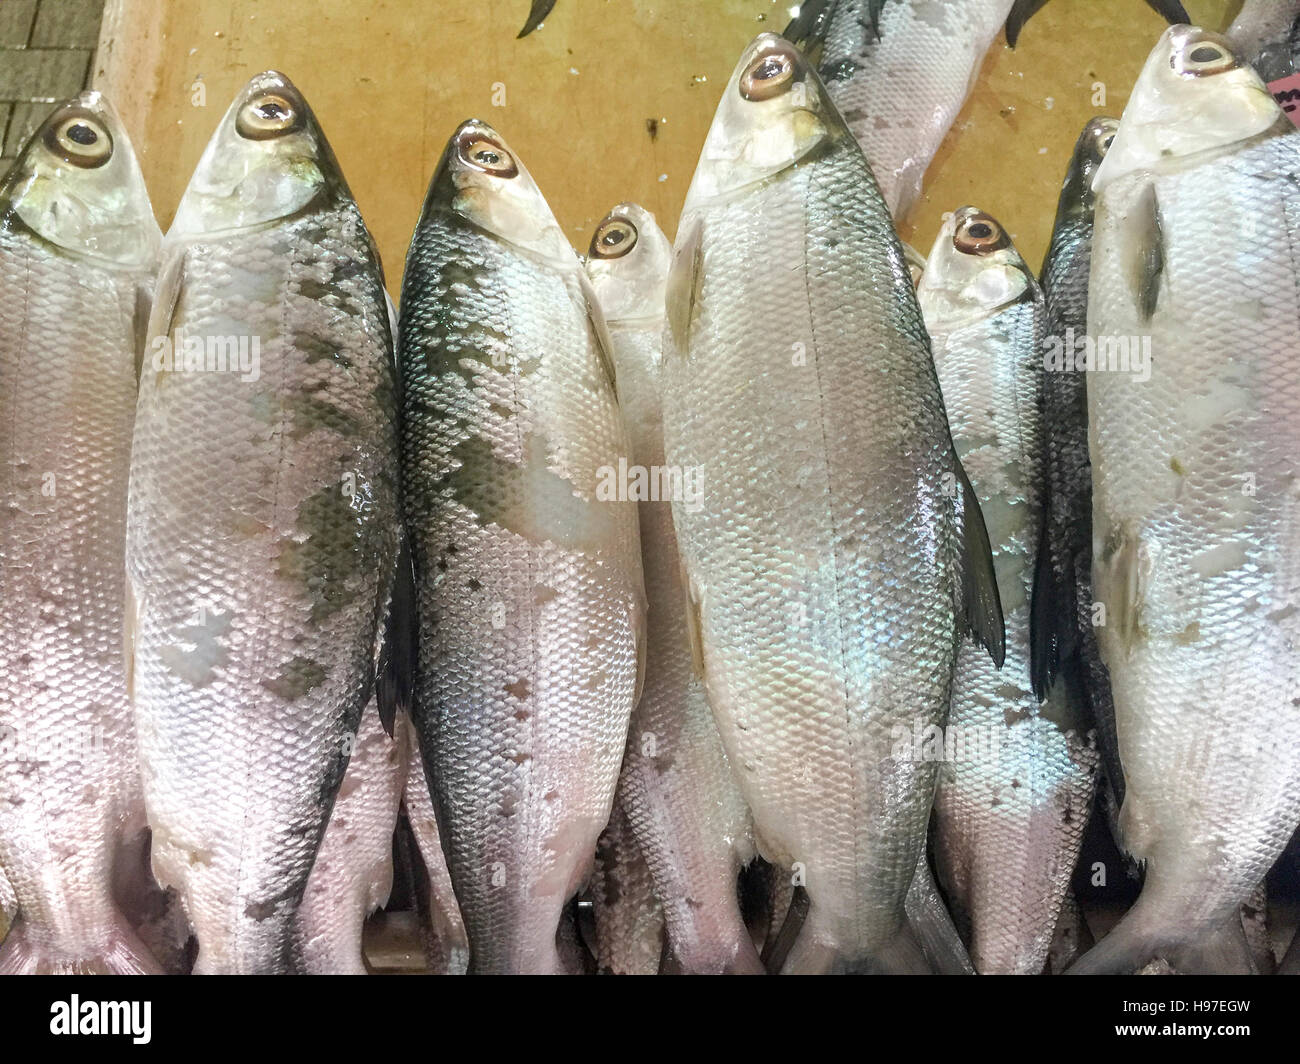 Milk Mish or local called Ikan Bolu or Bahulu on display at fish market. - Stock Image